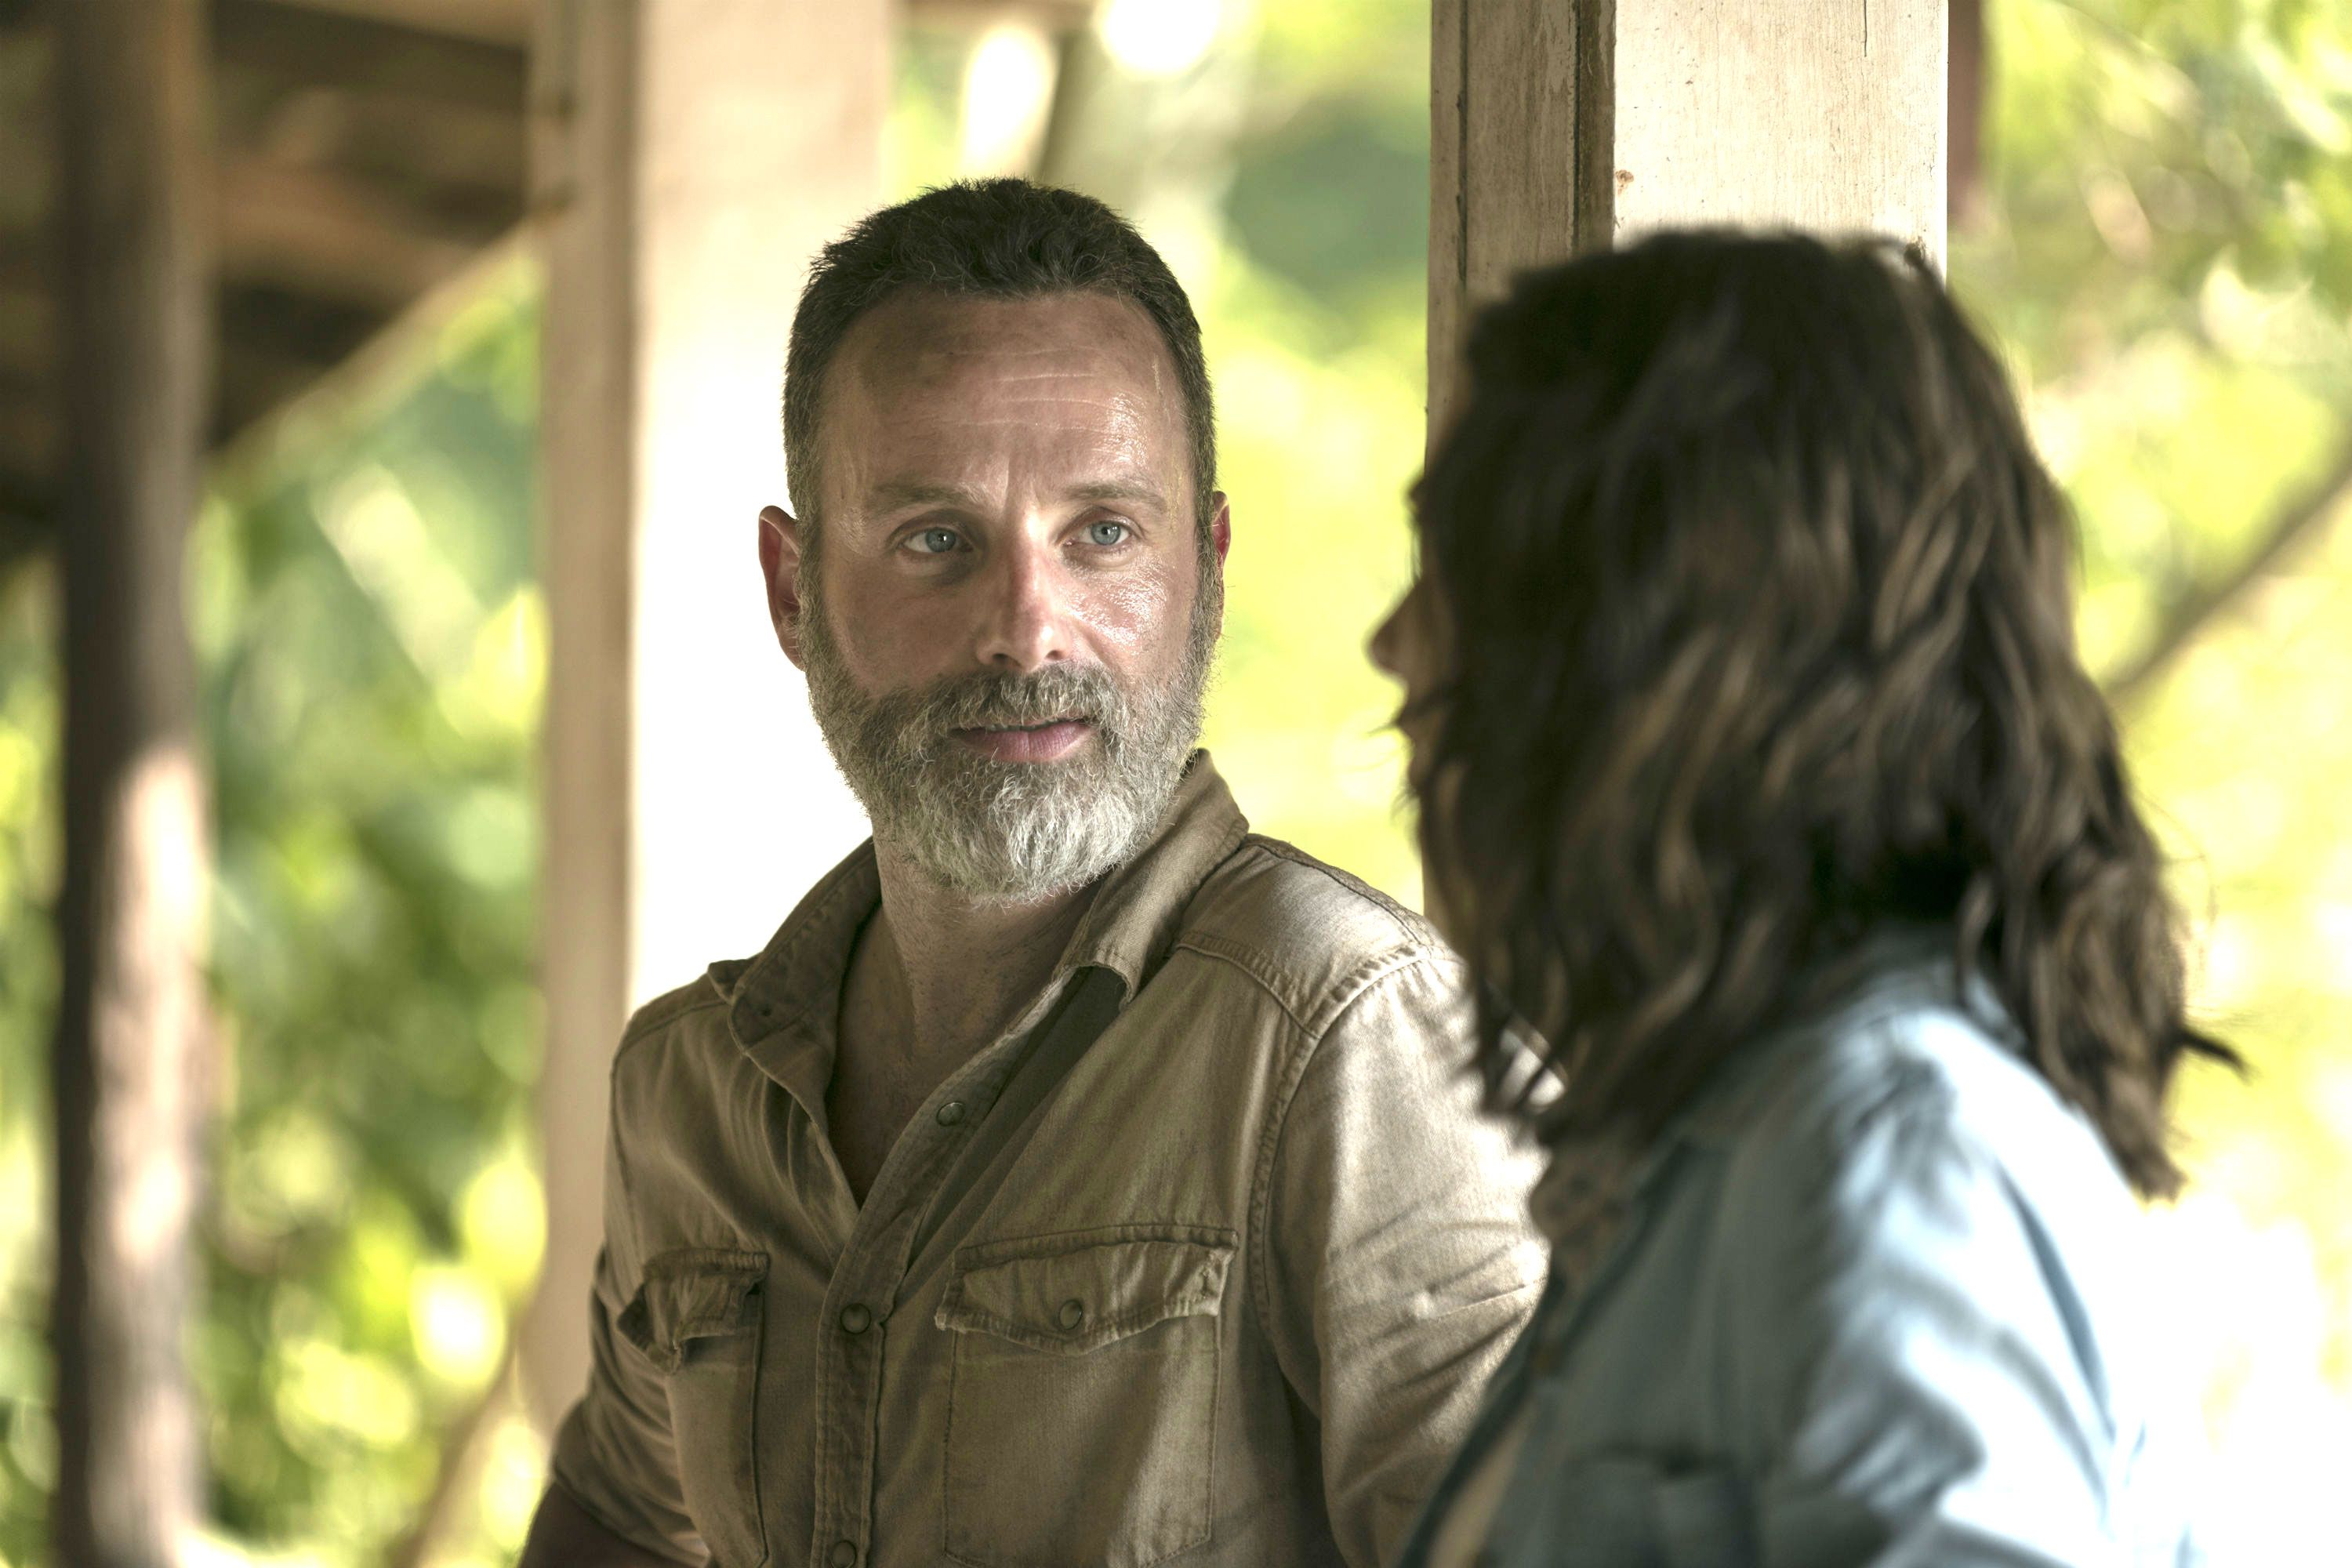 Andrew Lincoln as Rick Grimes - The Walking Dead, Season 9, Episode 3, 'Warning Signs'